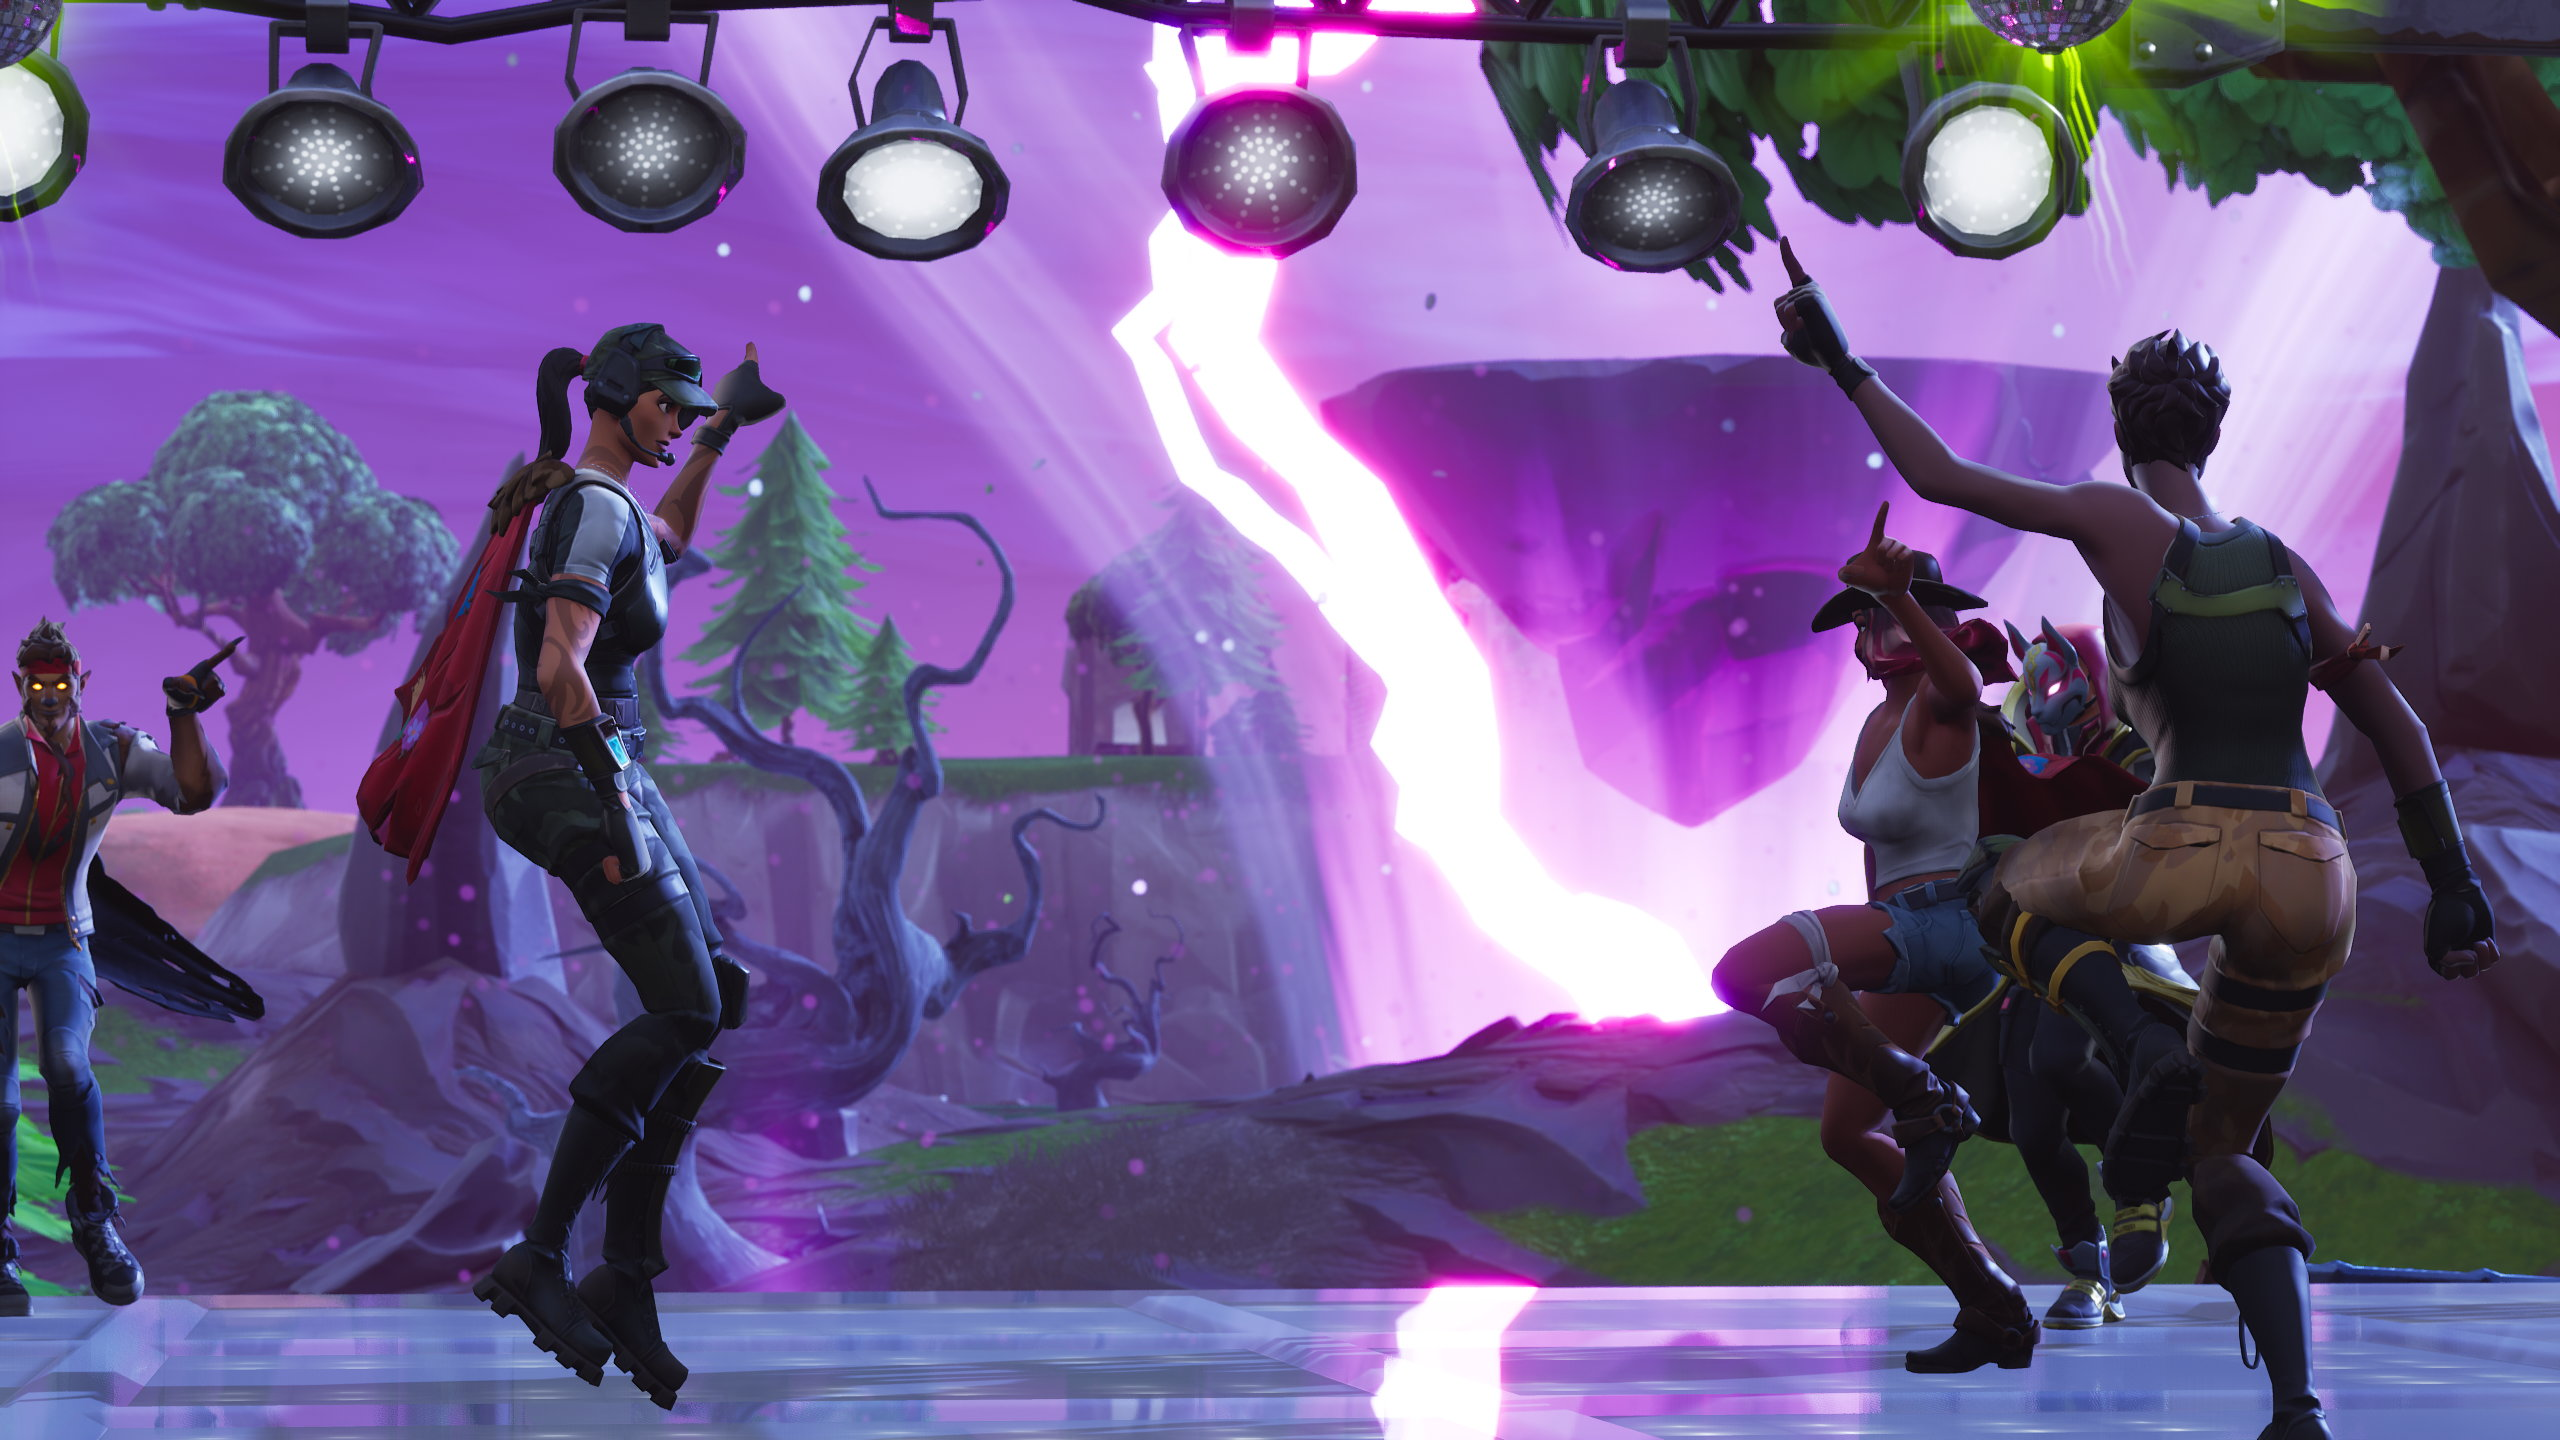 fortnite dance creator to pursue legal action against epic - how to do fortnite dances step by step